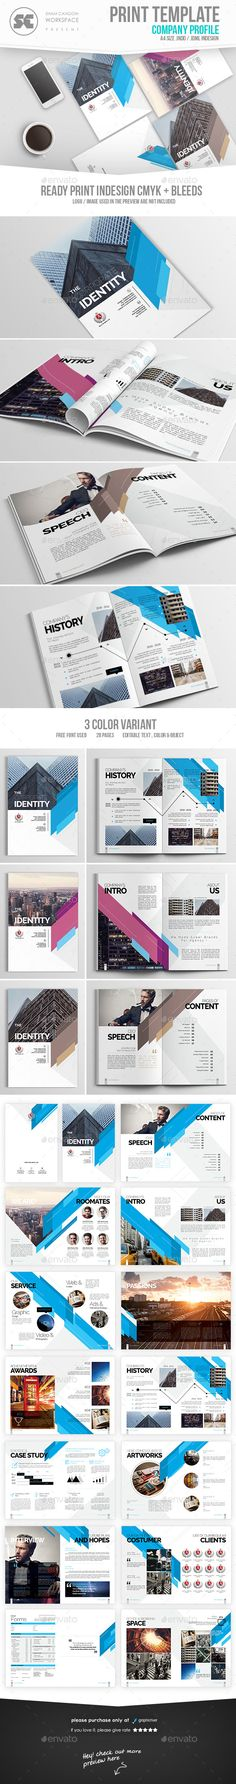 102 best company profile design images on pinterest company company profile design company profile template indesign templates brochure template brochure design business brochure corporate brochure friedricerecipe Image collections